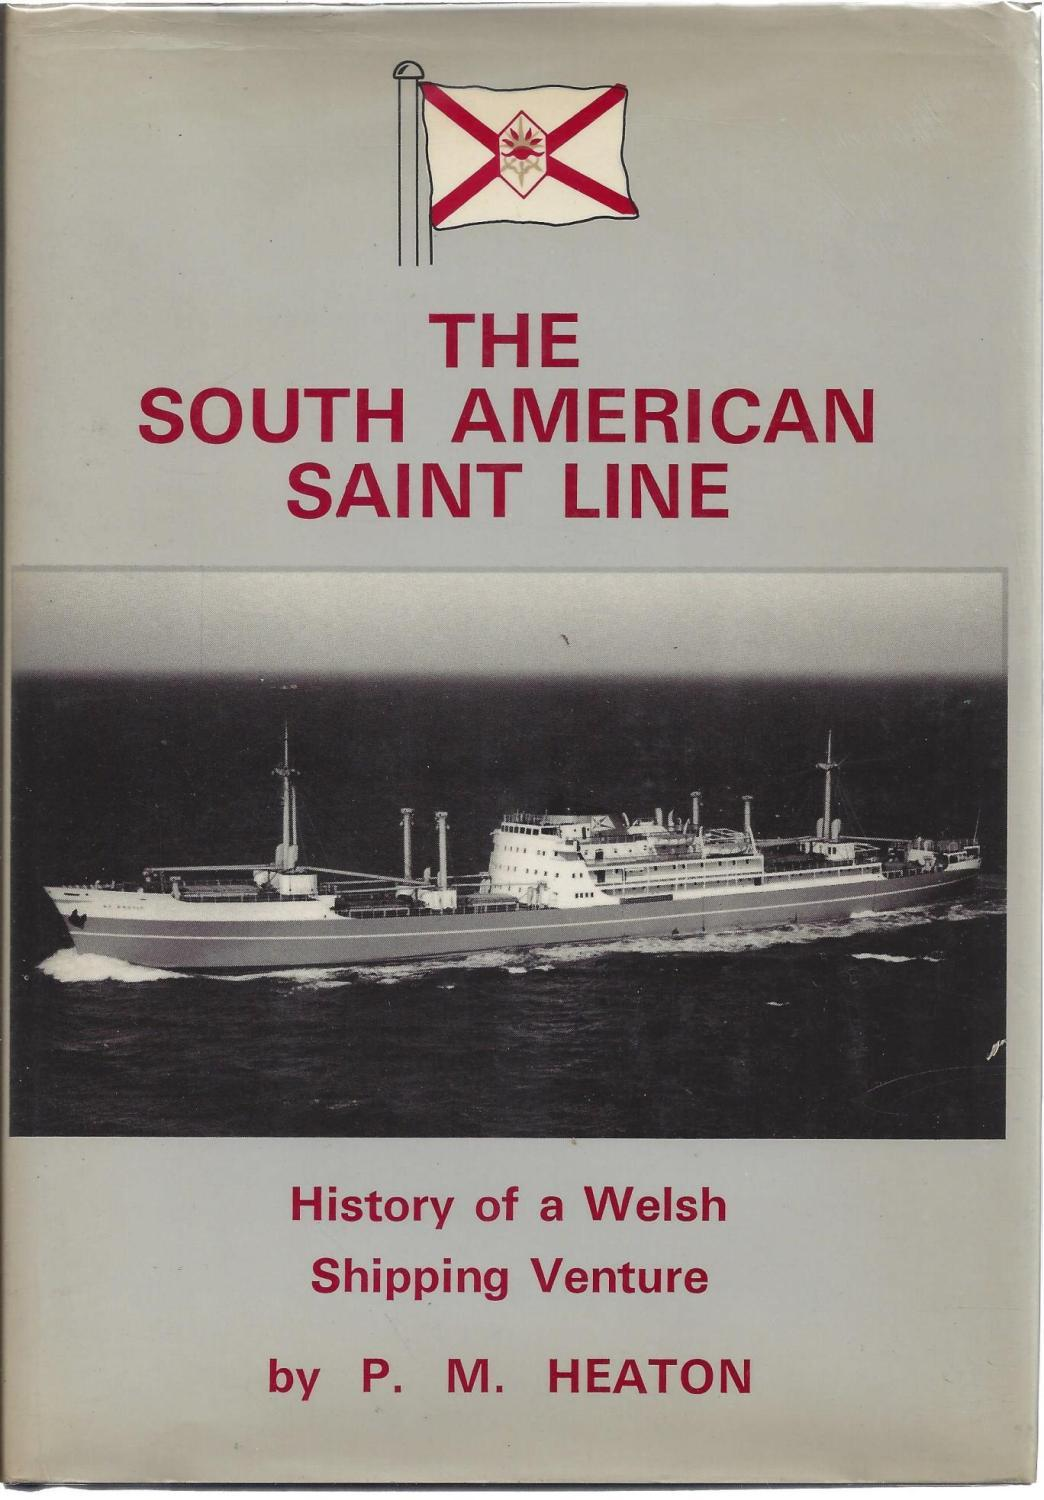 THE SOUTH AMERICAN SAINT LINE, History of a Welsh Shipping Venture, P.M. HEATON